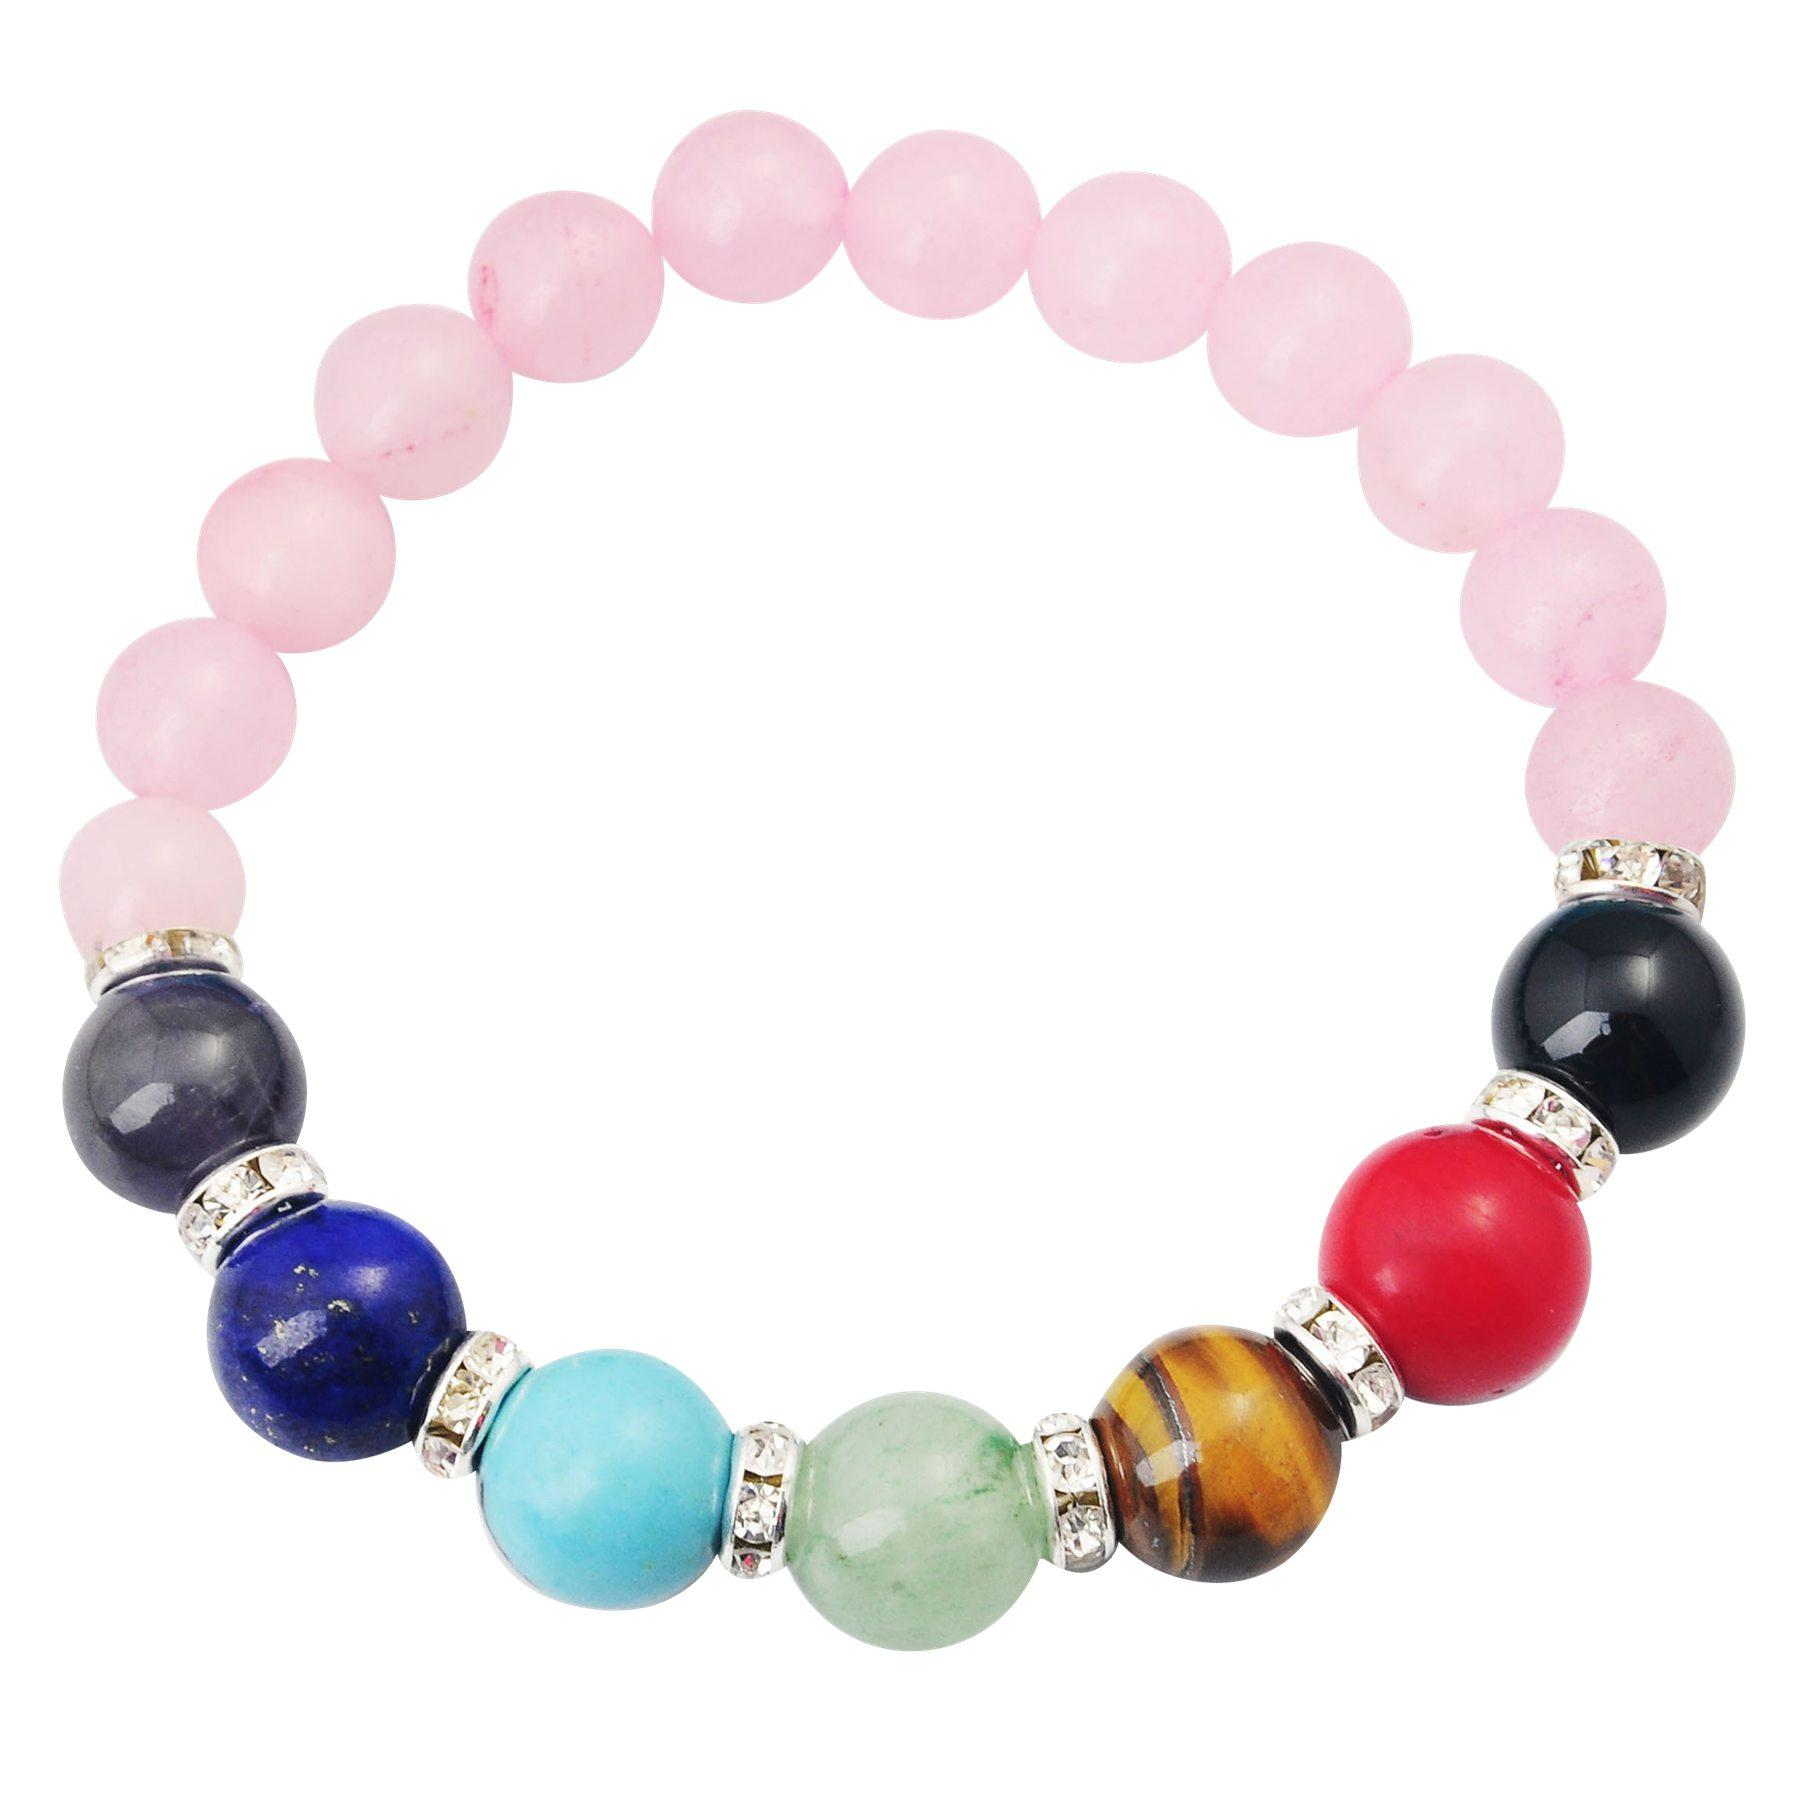 Joya Gift 14SB1037-8MM Natural Rose Quartz Beads bracelet 7 Chakra Gemstone Crystal Healing Reiki women jewelry bangle Free Shipping